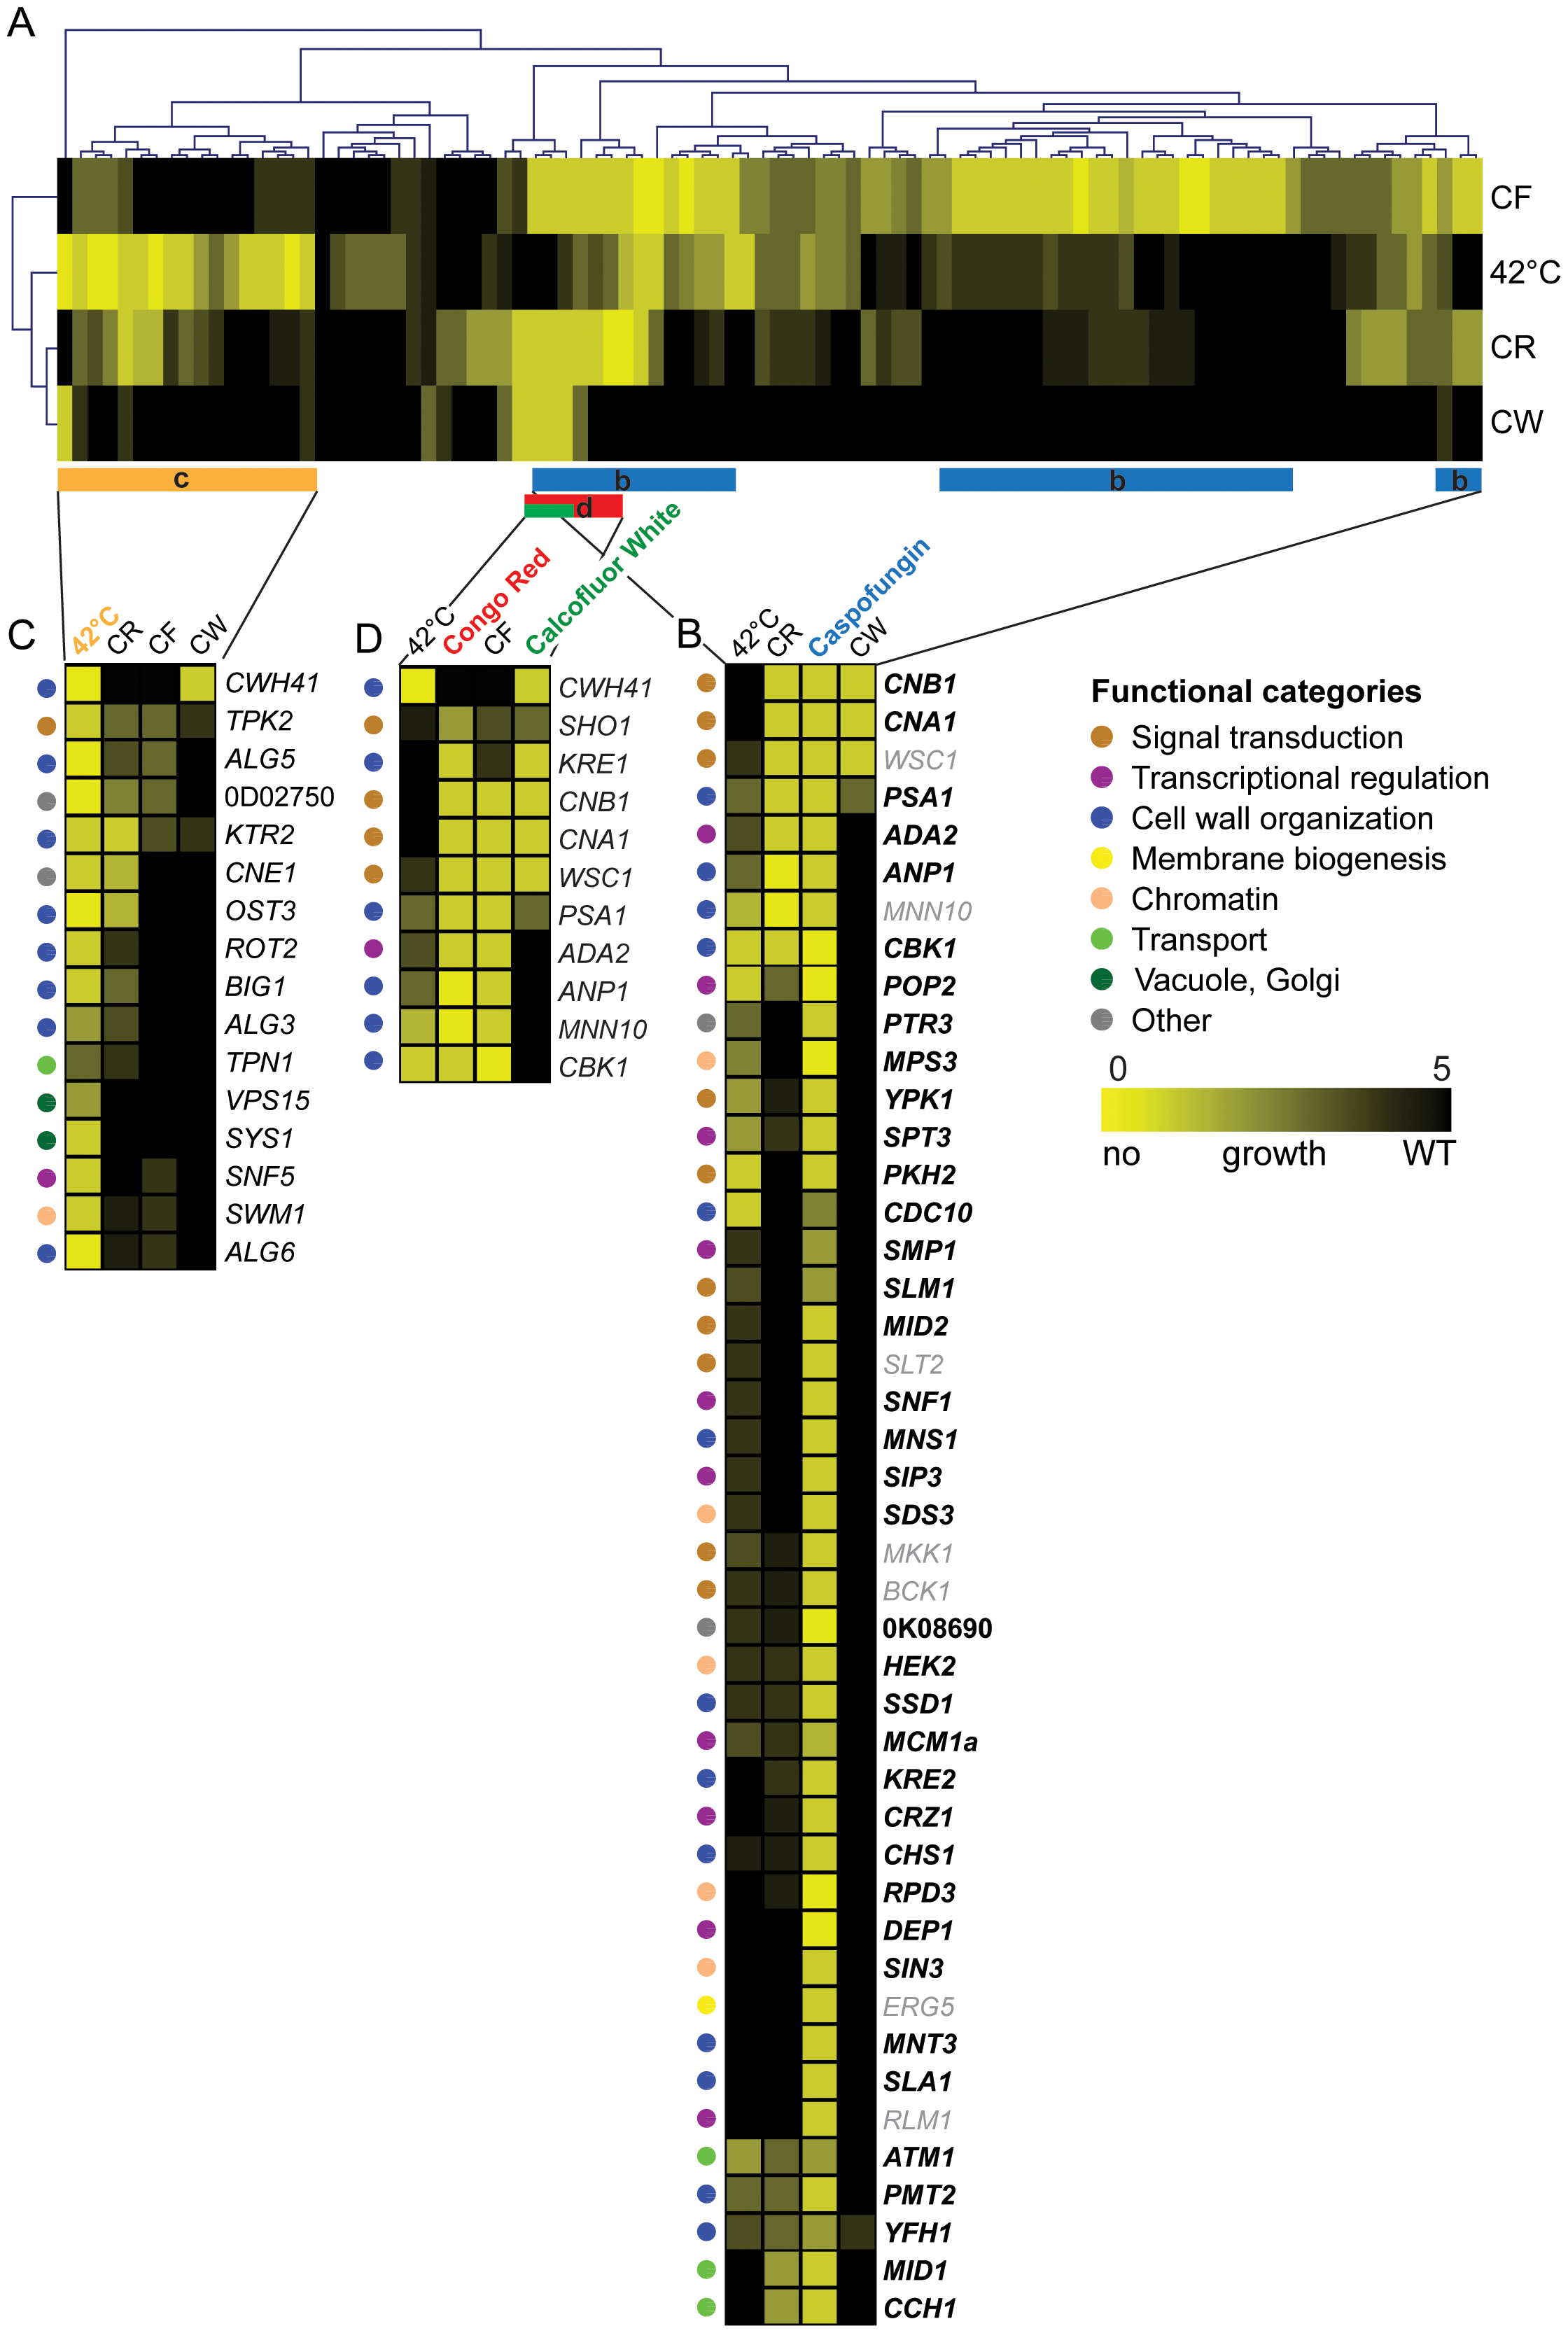 Clustering of susceptibility data of the <i>C. glabrata</i> gene deletion collection.